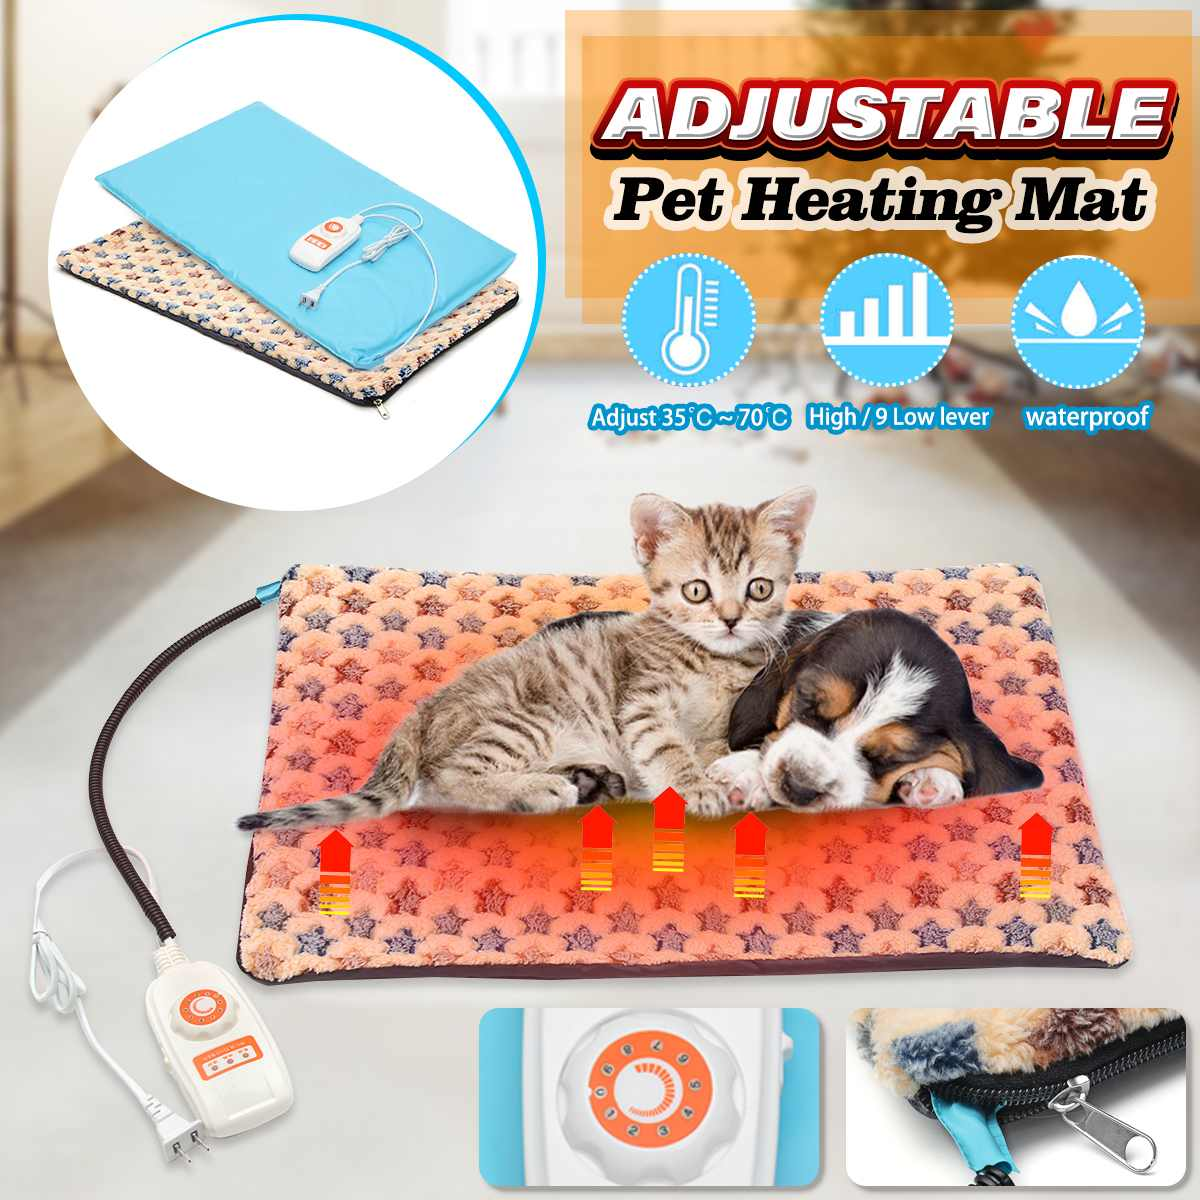 10 Level 40x60cm Electric Heater Waterproof Adjustable Heated Mat Dog Cat Pet Heating Pad Bed Blanket Winter Heated Glove Carpet